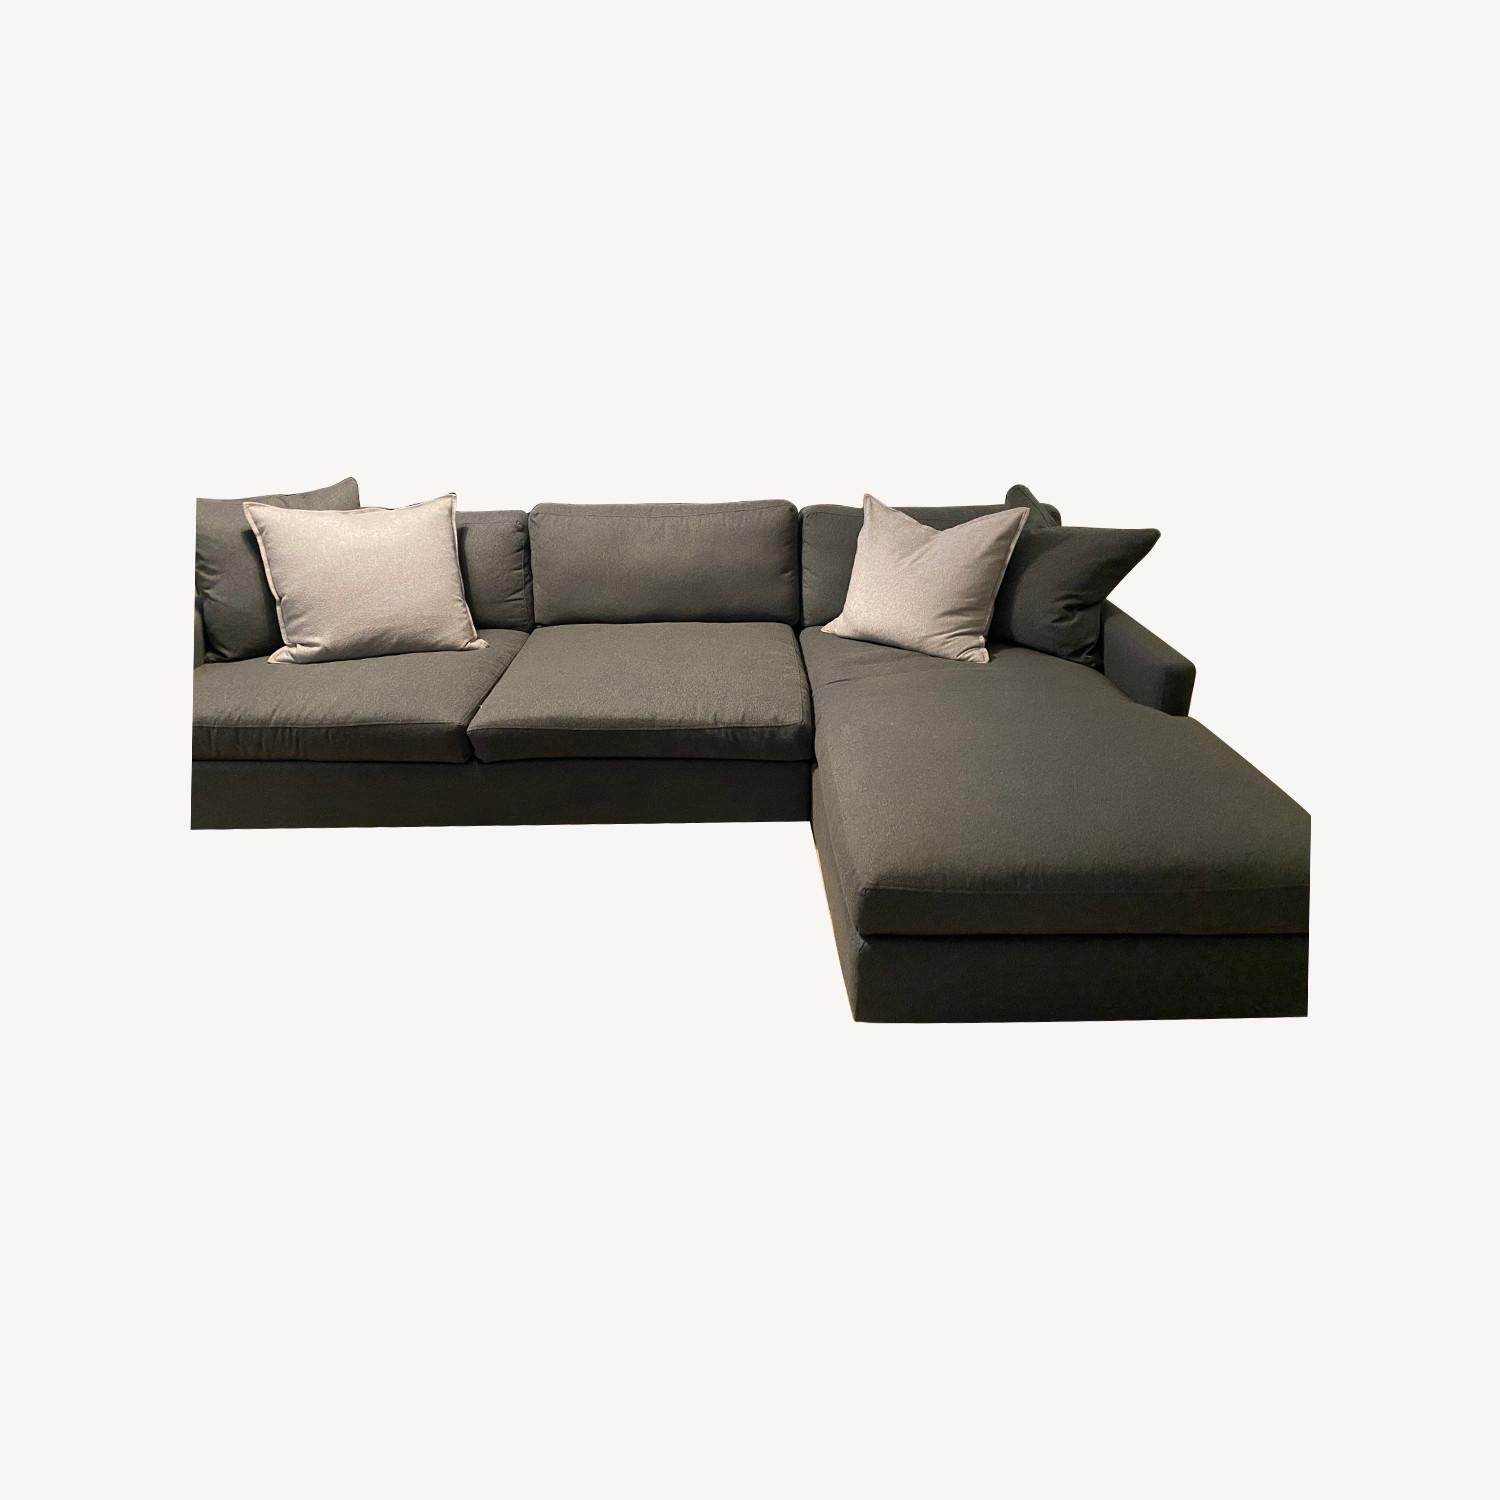 Room & Board Charcoal Sectional - image-0